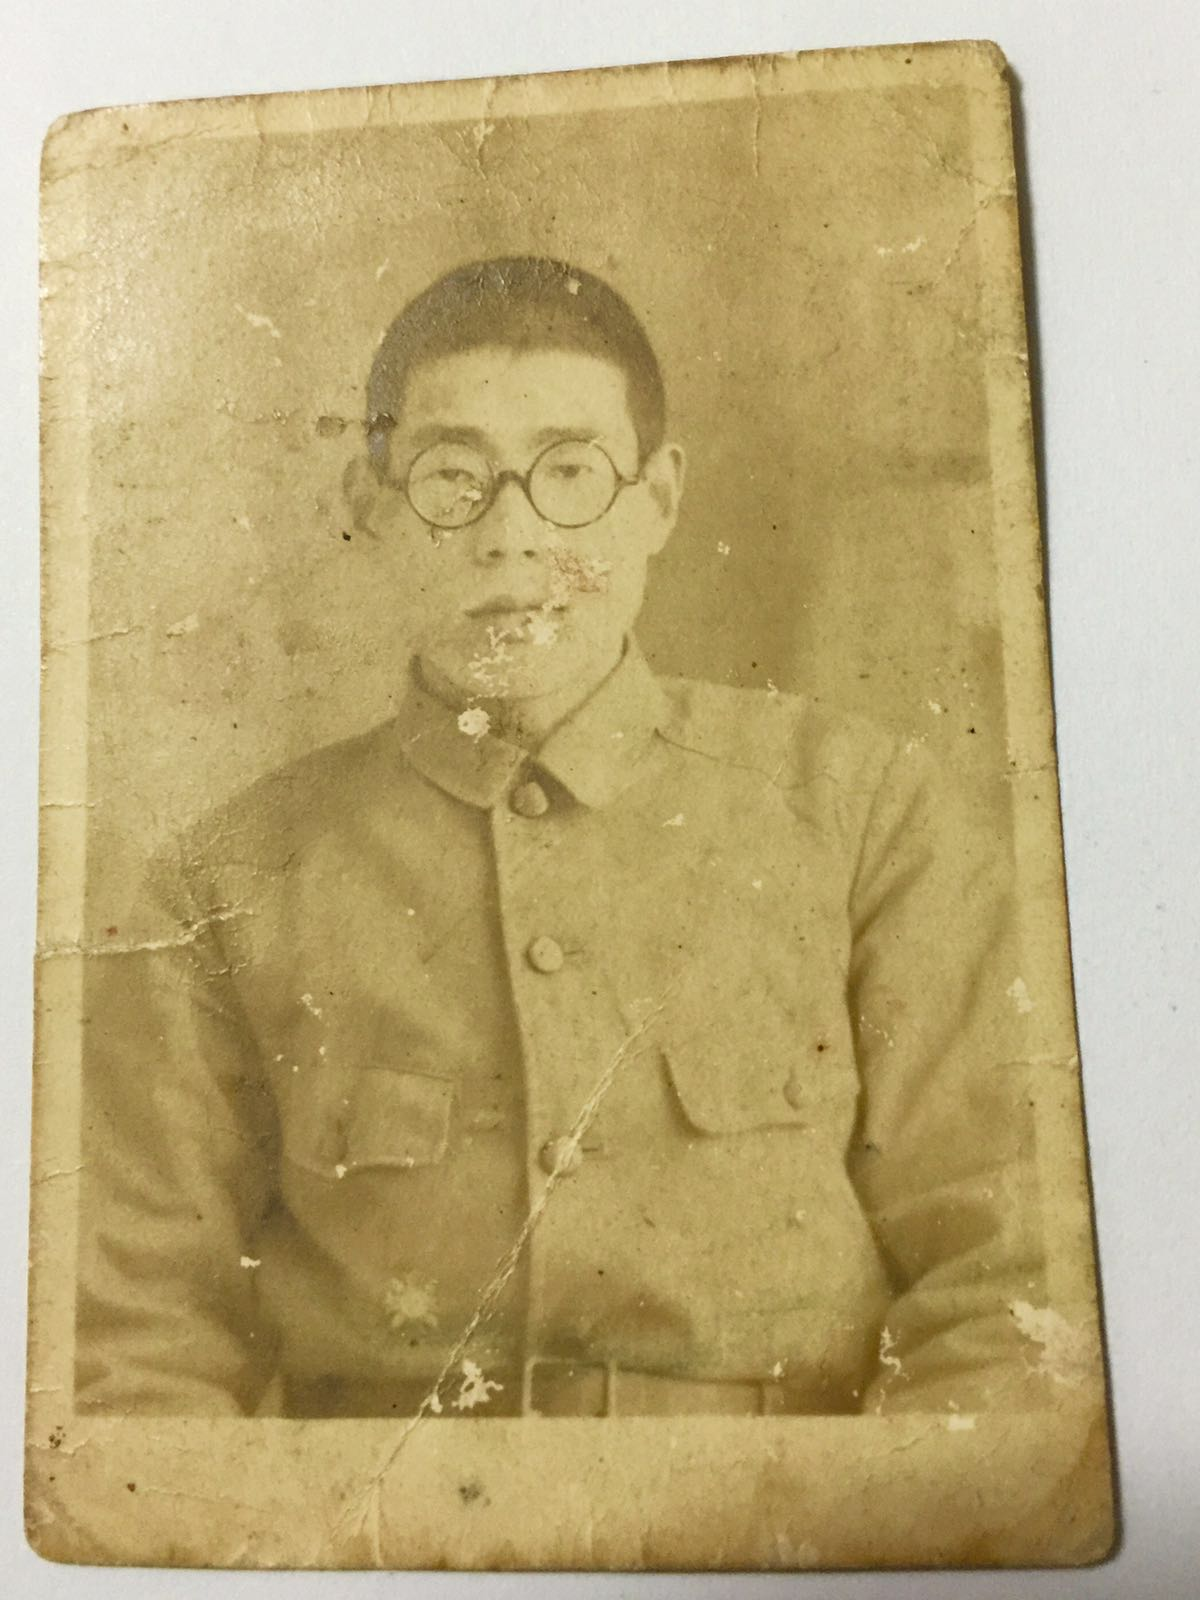 A member of the Japanese home guard that Lim befriended and had tried to get in contact with after the war. Lim considered him a friend, and dreamt of returning to Japan one day.